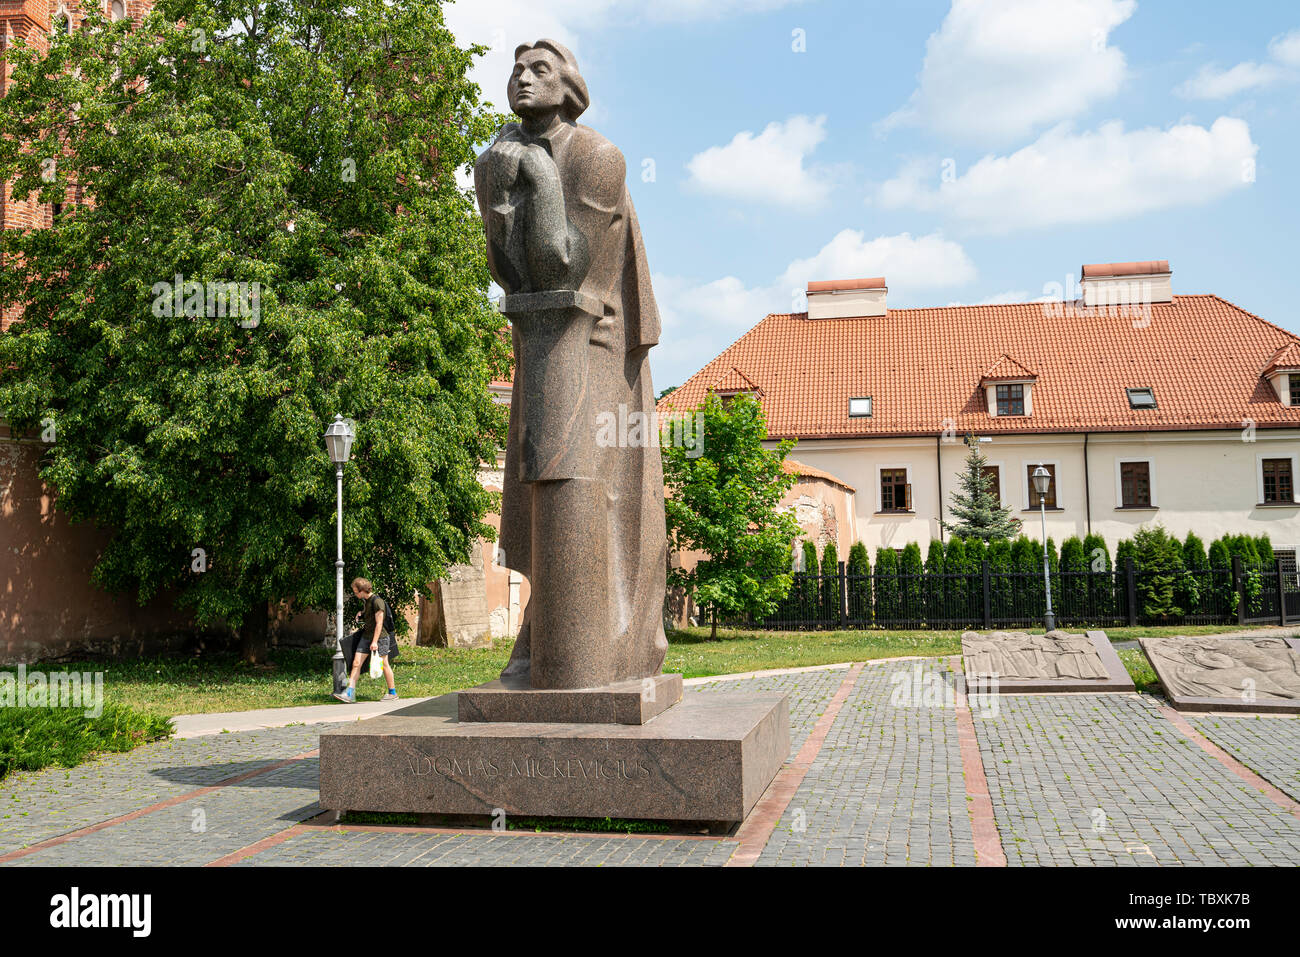 Vilnius, Lithuania. May 2019.   The monument to the famous poet Adomas Mickevicius (Adam Mickiewicz) made by the sculptor Gediminas Jokubonis at 1984 - Stock Image